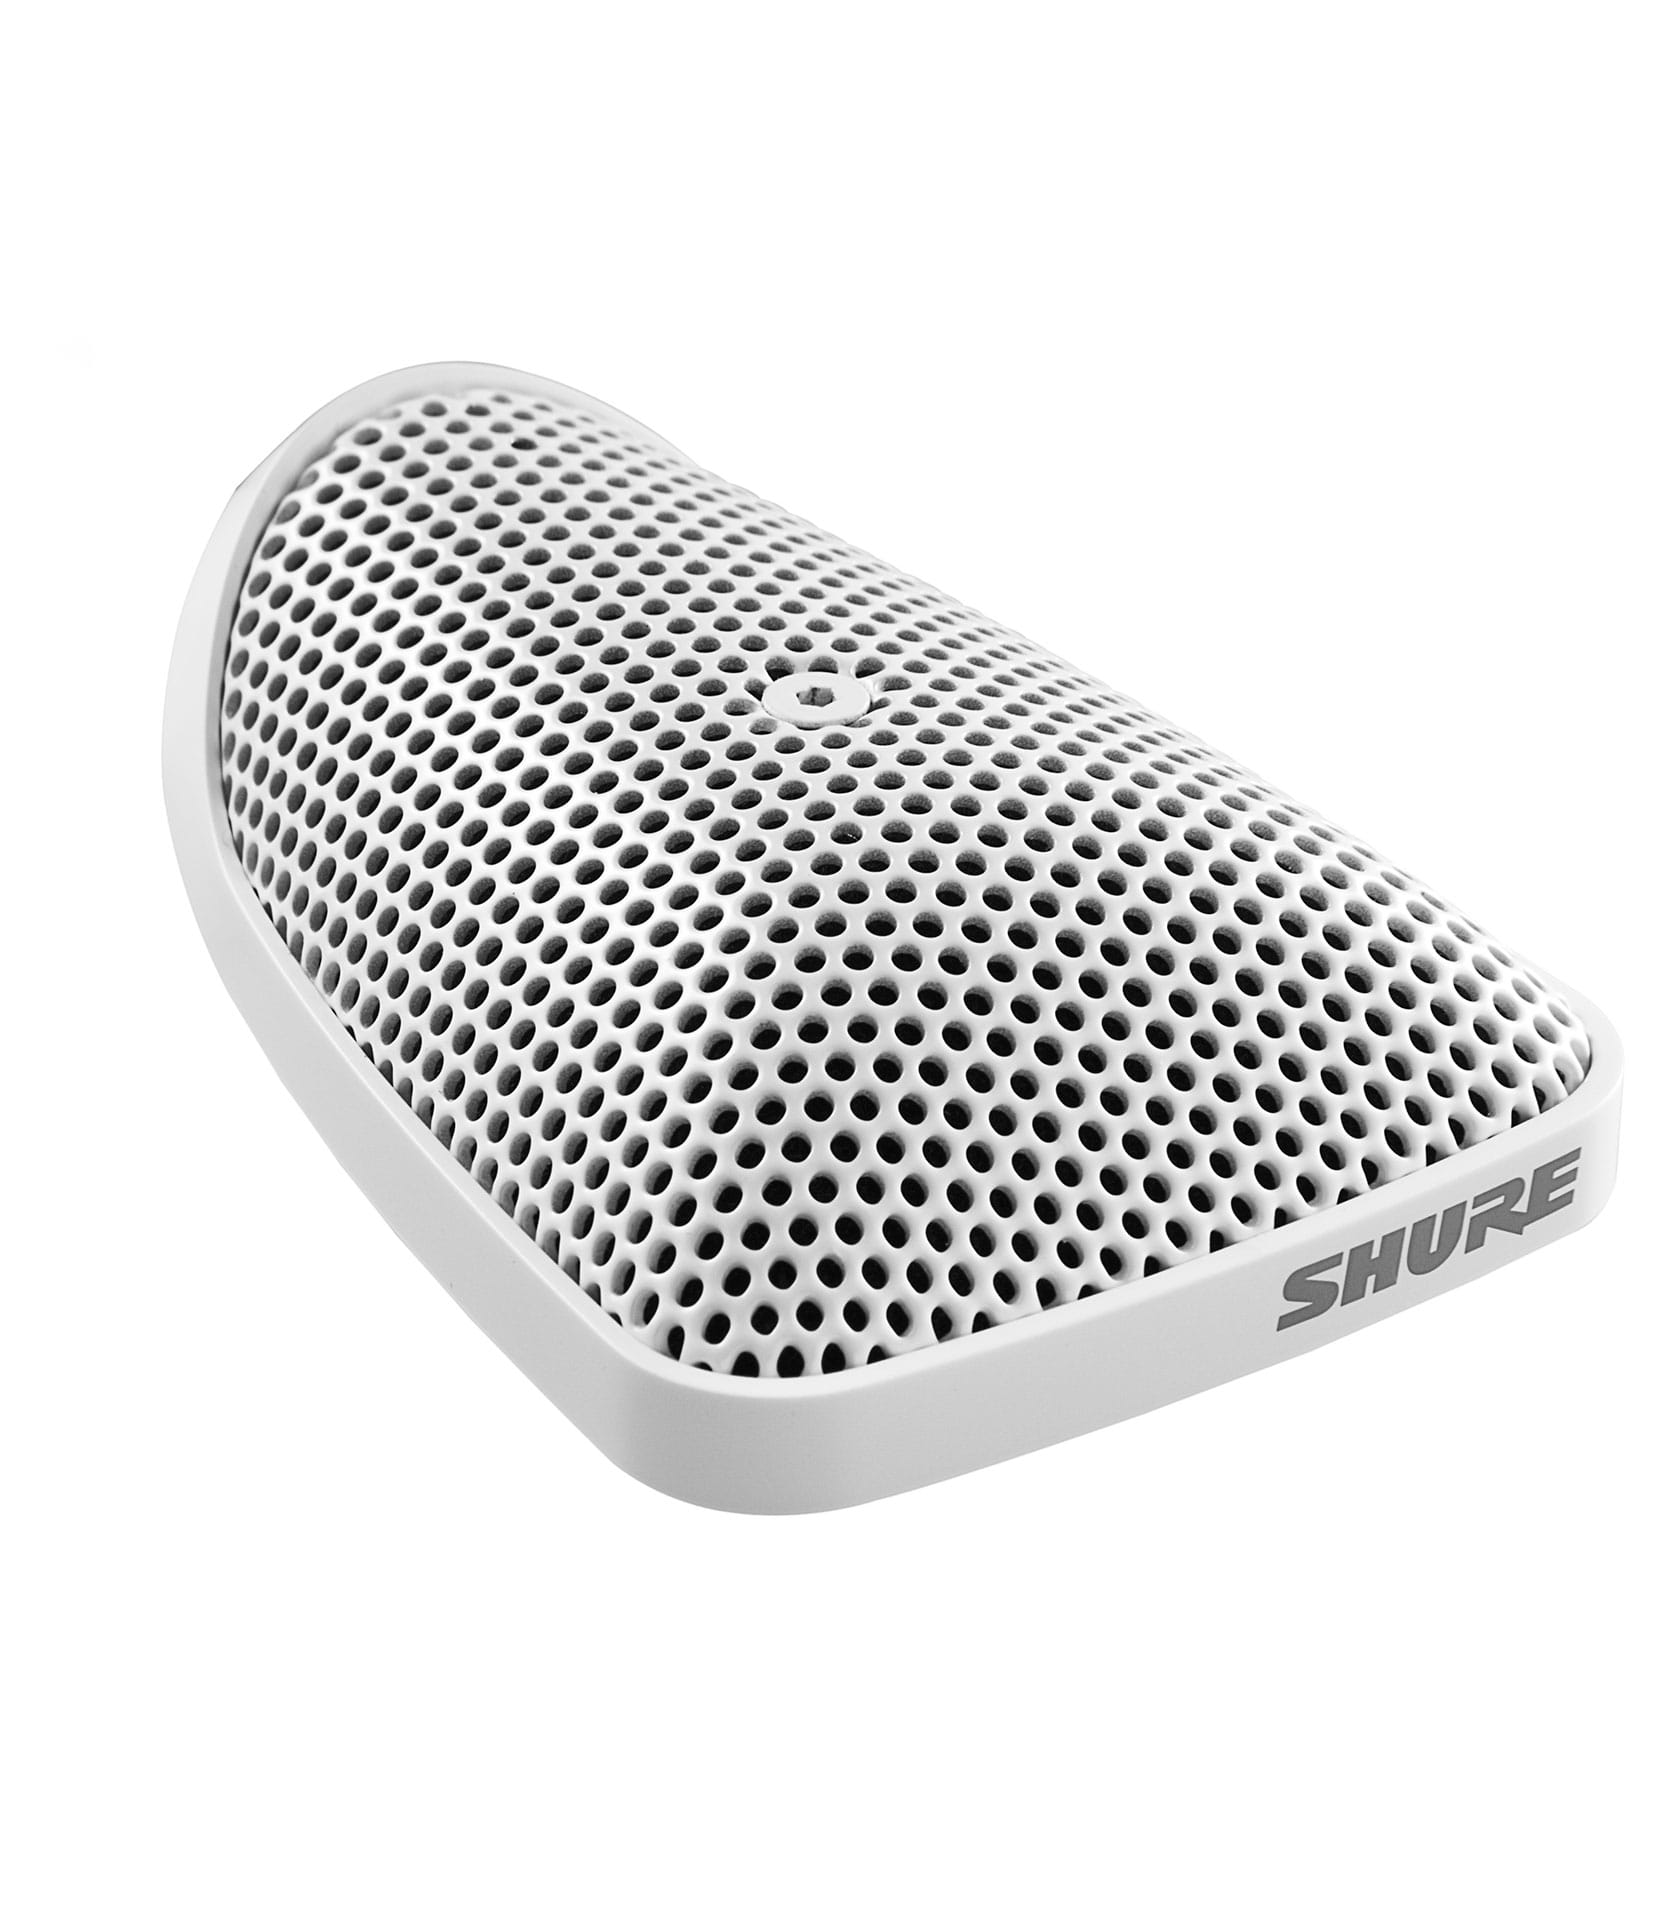 Buy Shure CVBWC Cardioid Condencer Boundary Microphone White Melody House